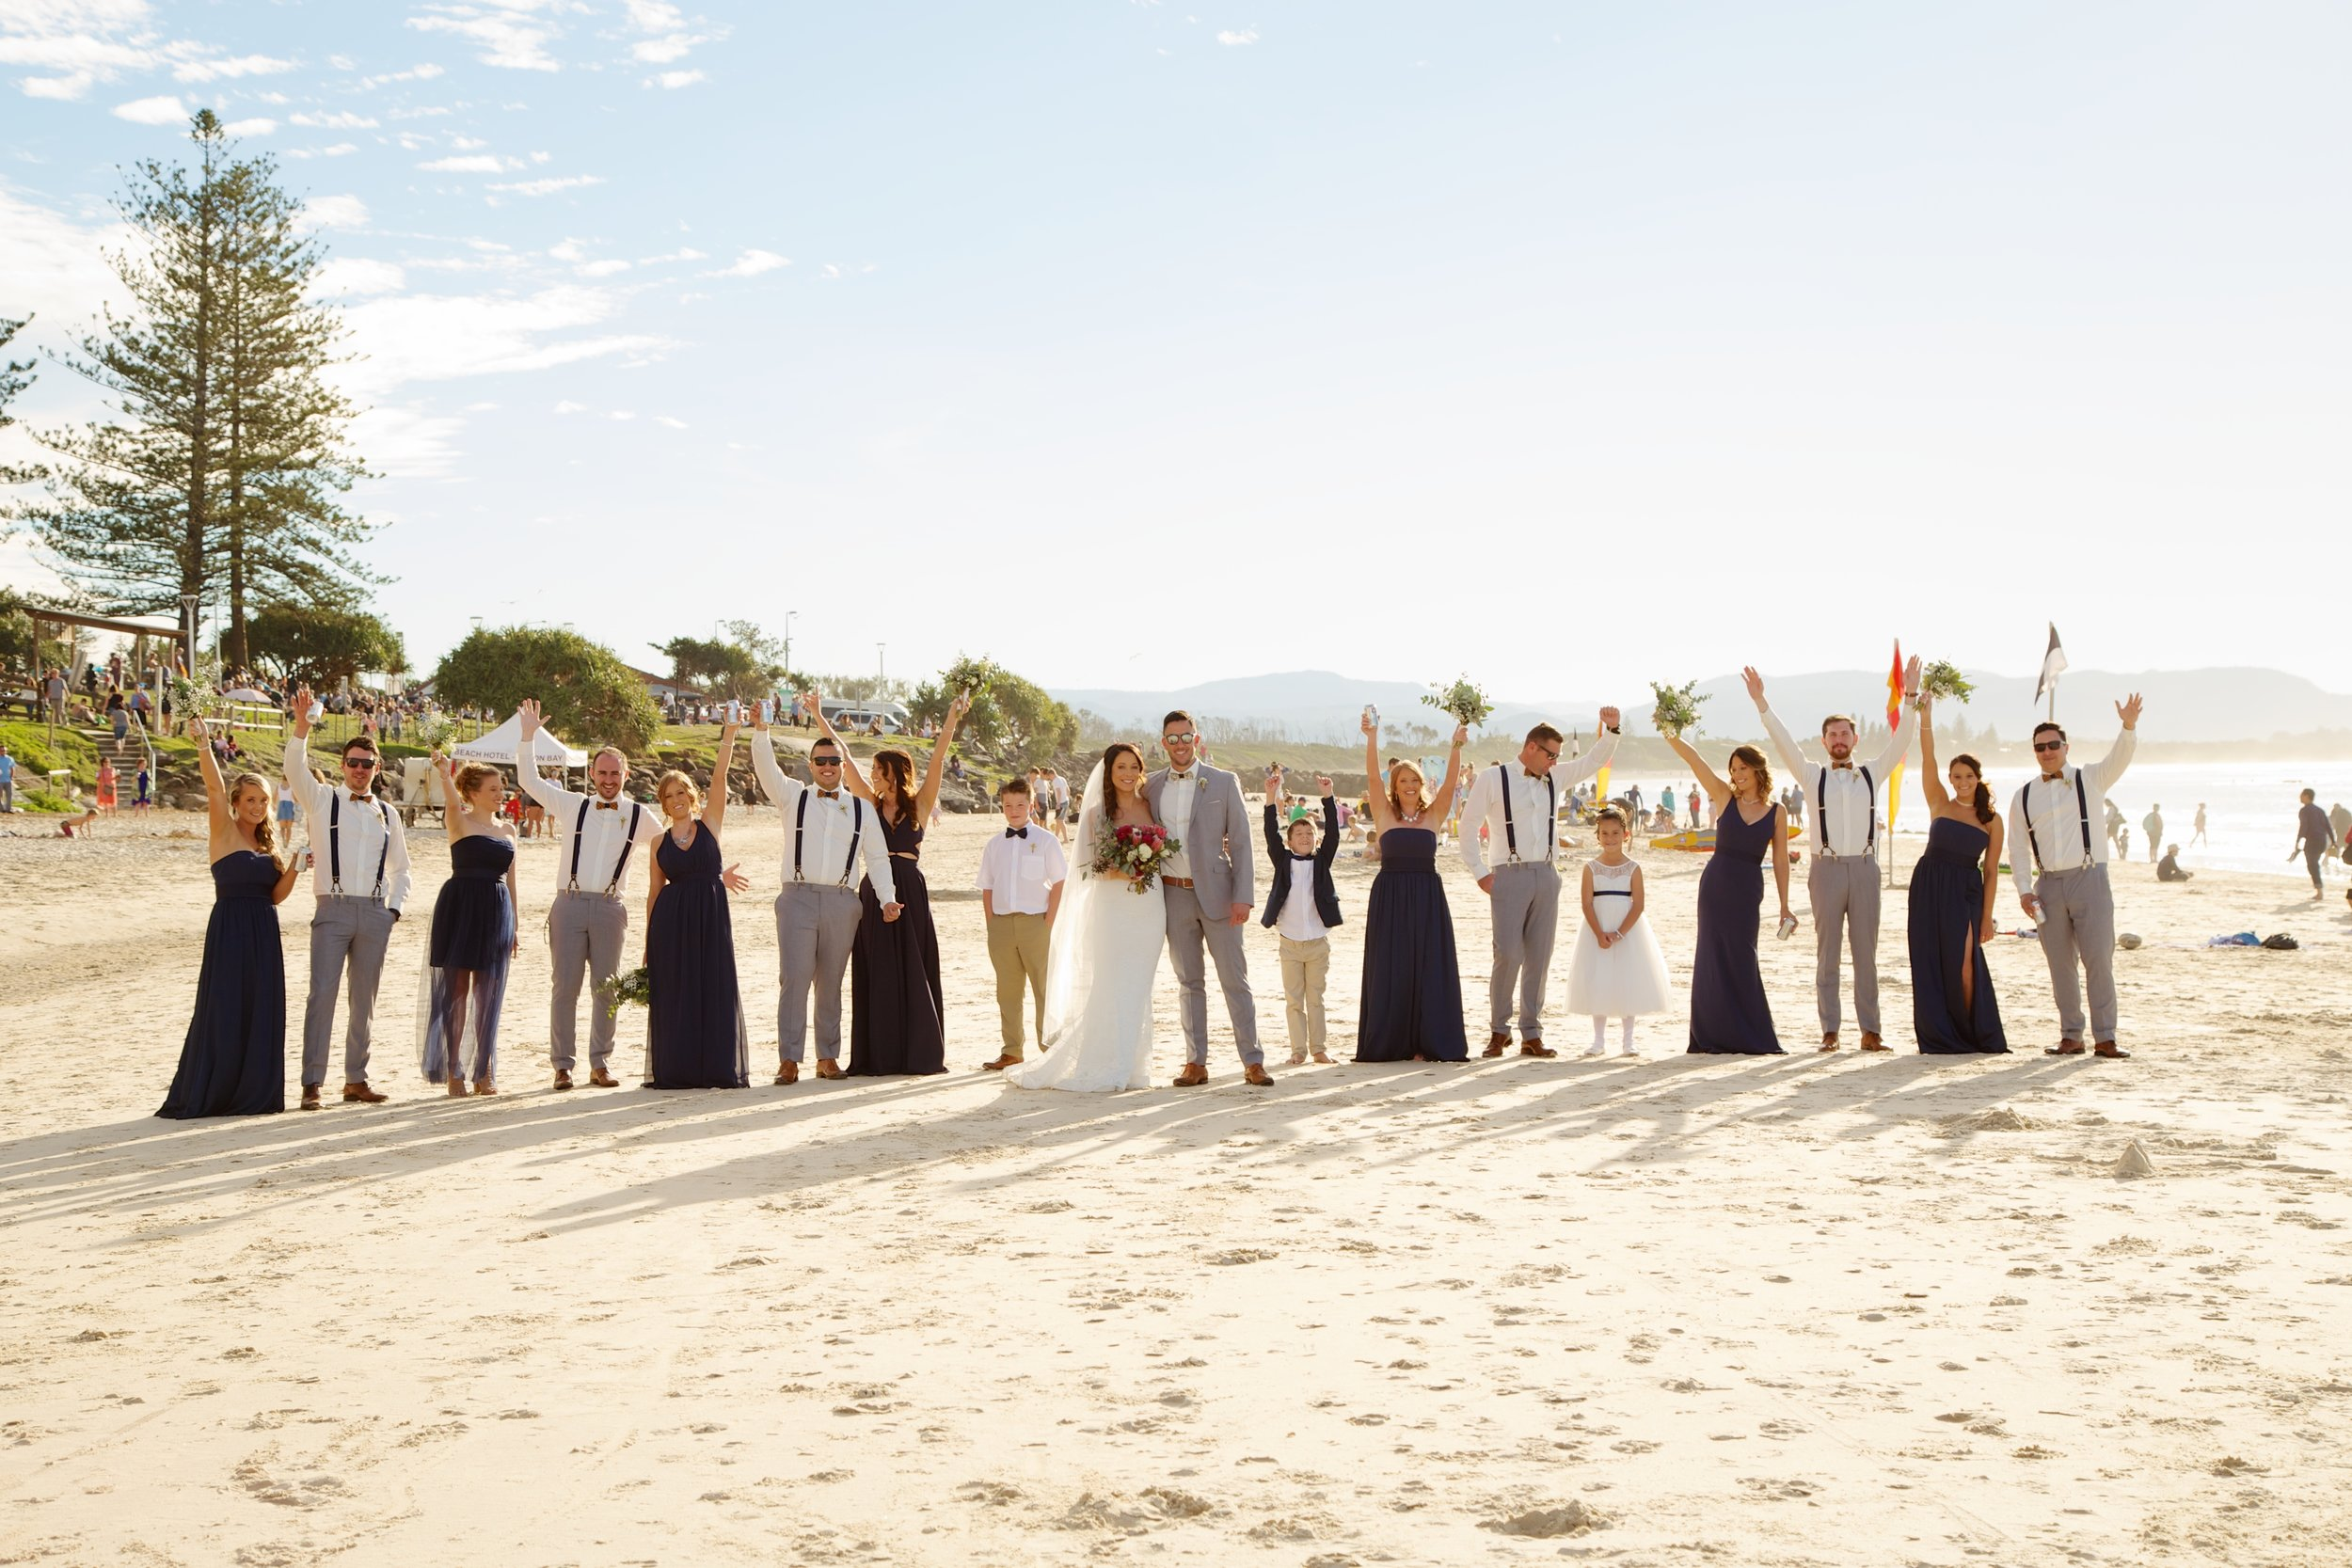 Professional Wedding Photographer at the Surf Club, Byron Bay Beach, NSW